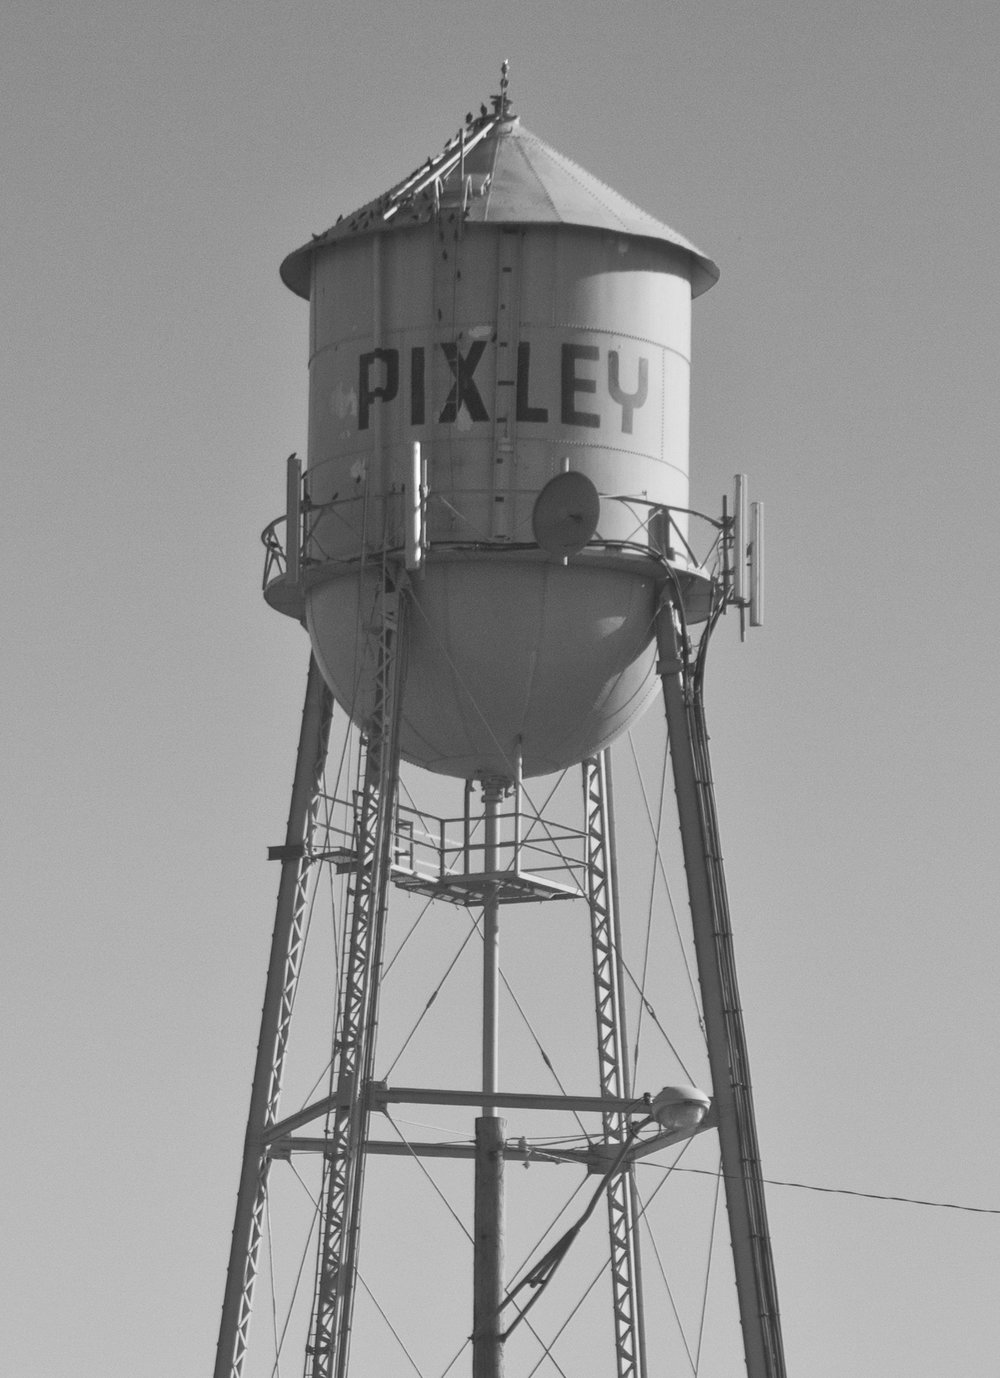 Pixley_Watertower2016.jpg